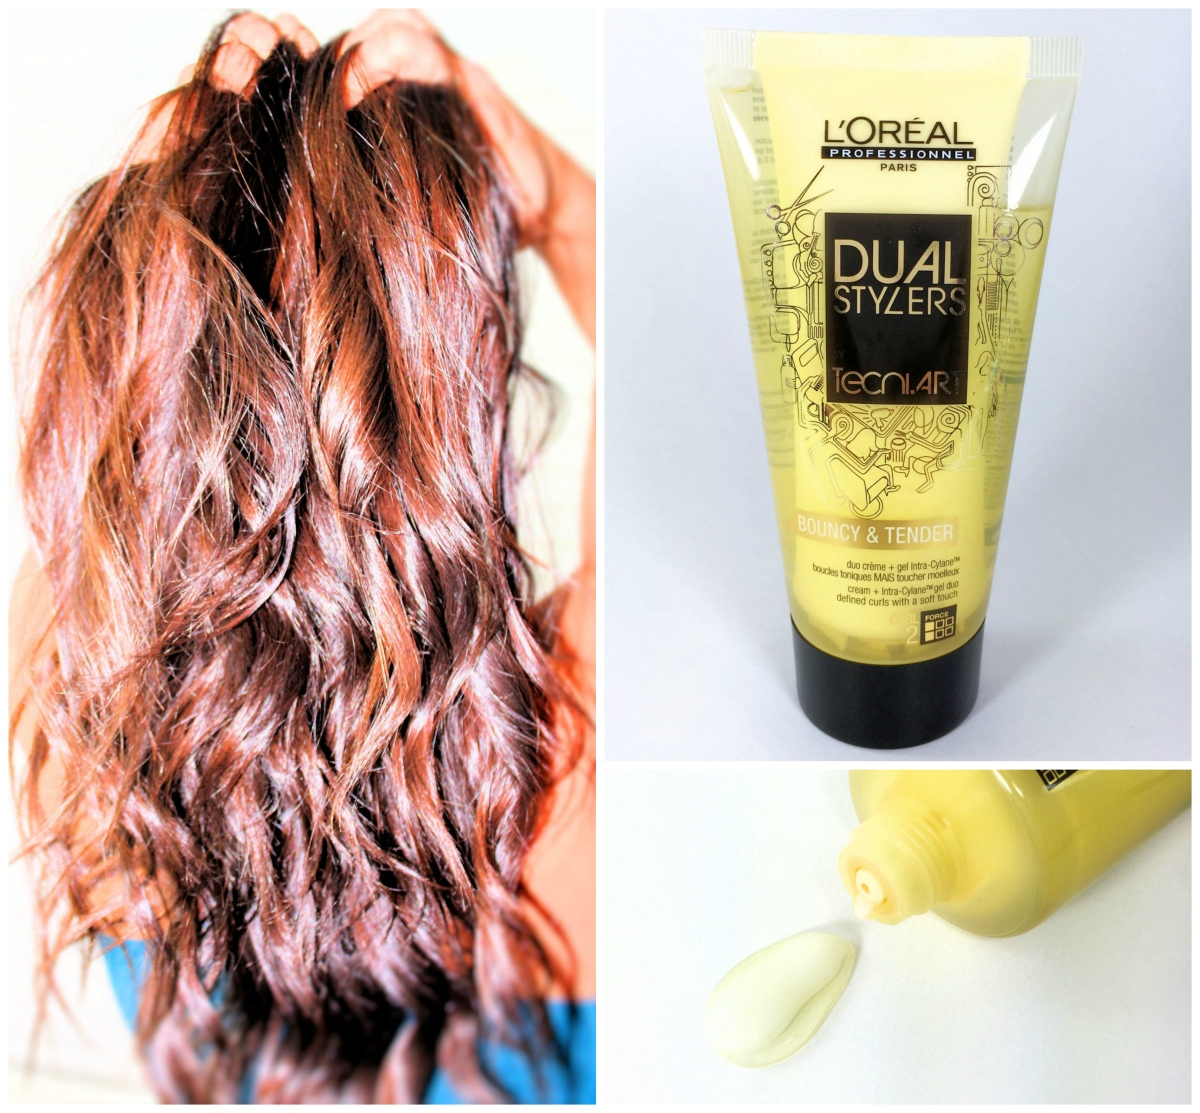 Loreal Dual Stylers Bouncy and Tender